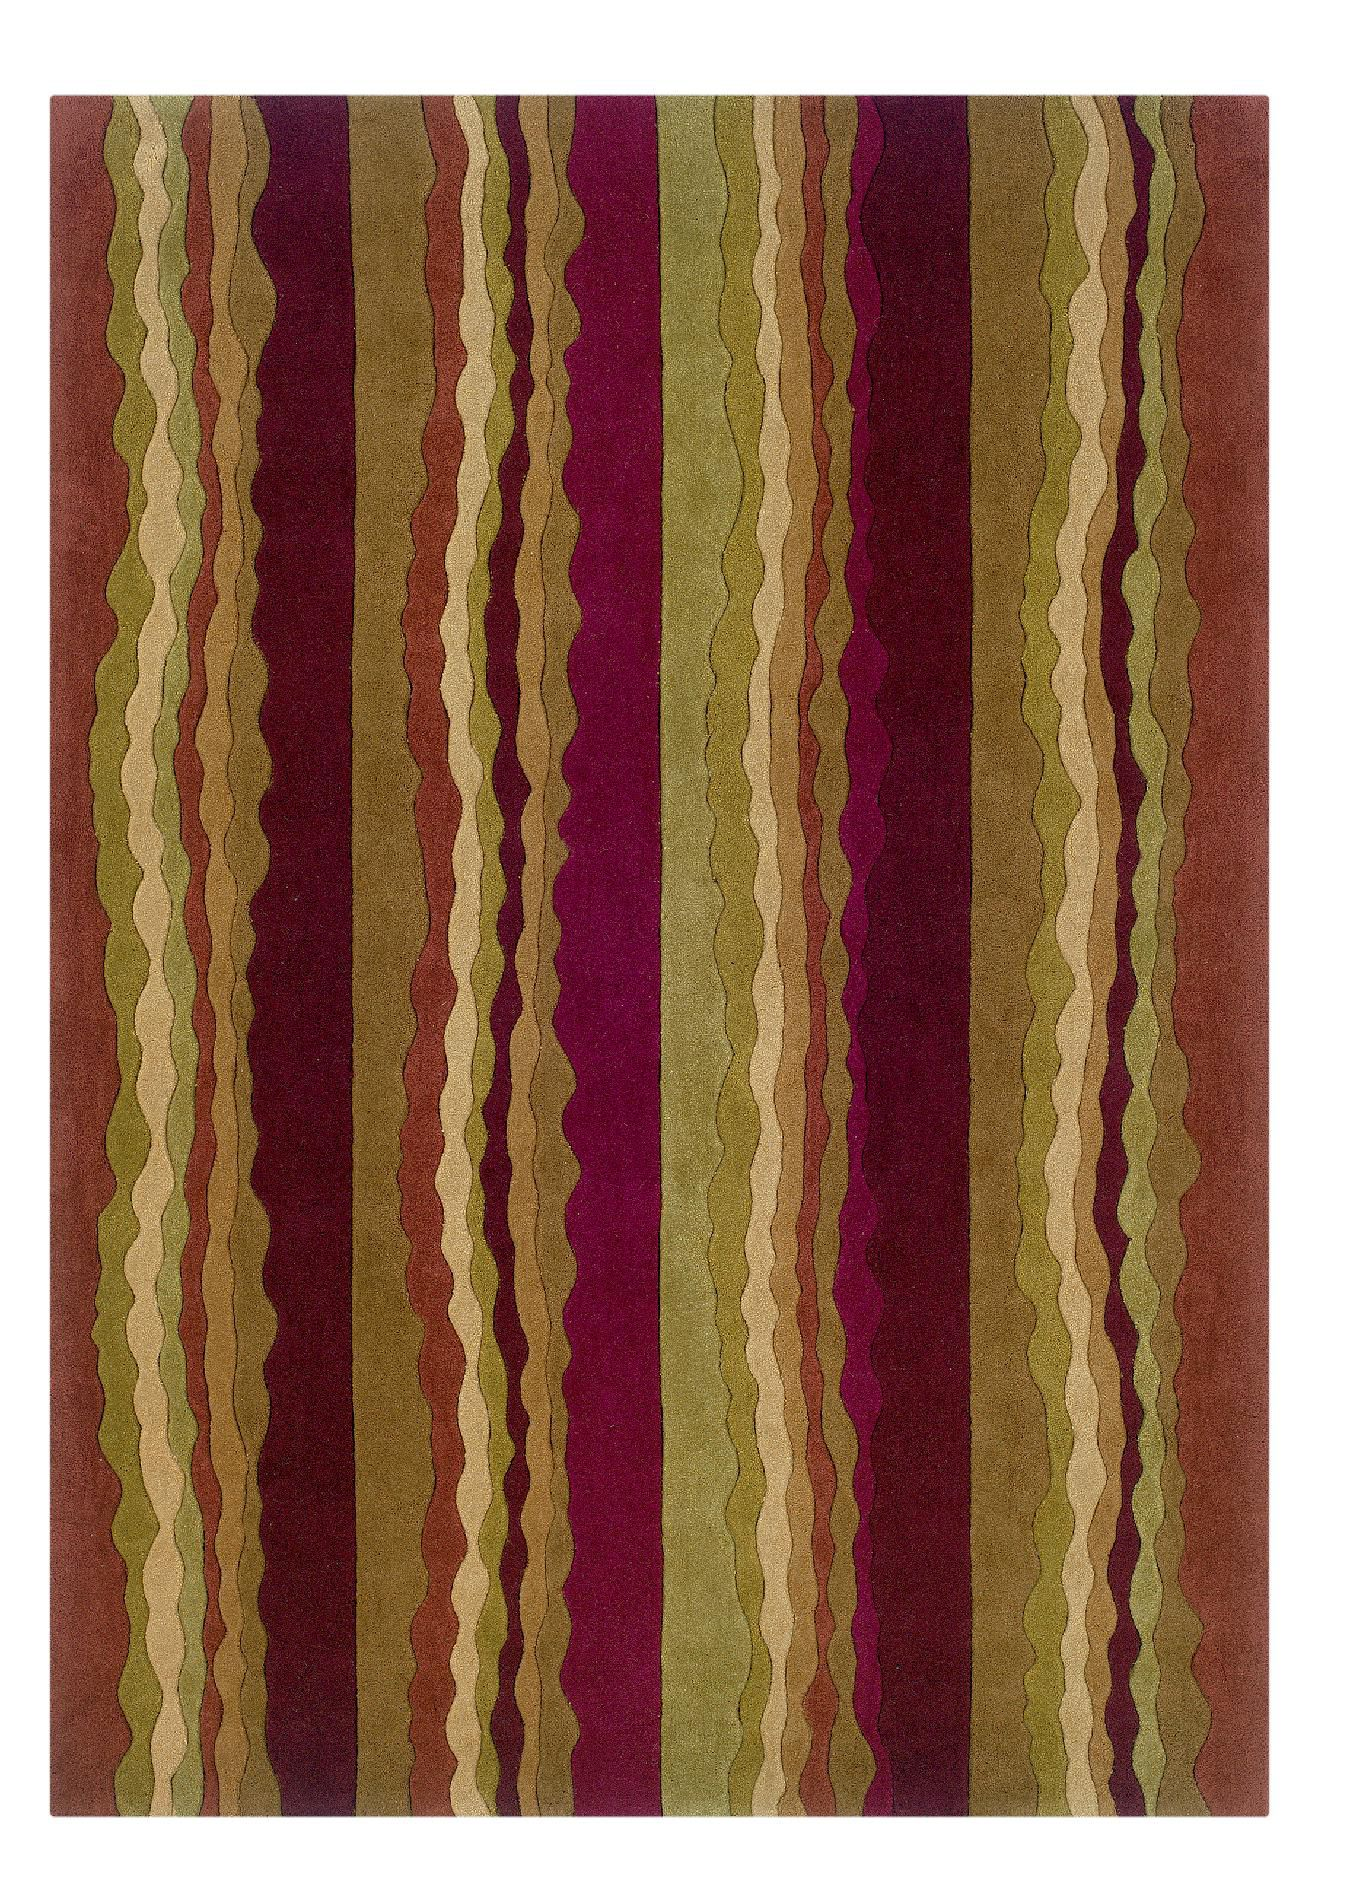 Image of Linon Rugs Trio Collection TA067 5' X 7', Size: 5 ft. x 8 ft., Red